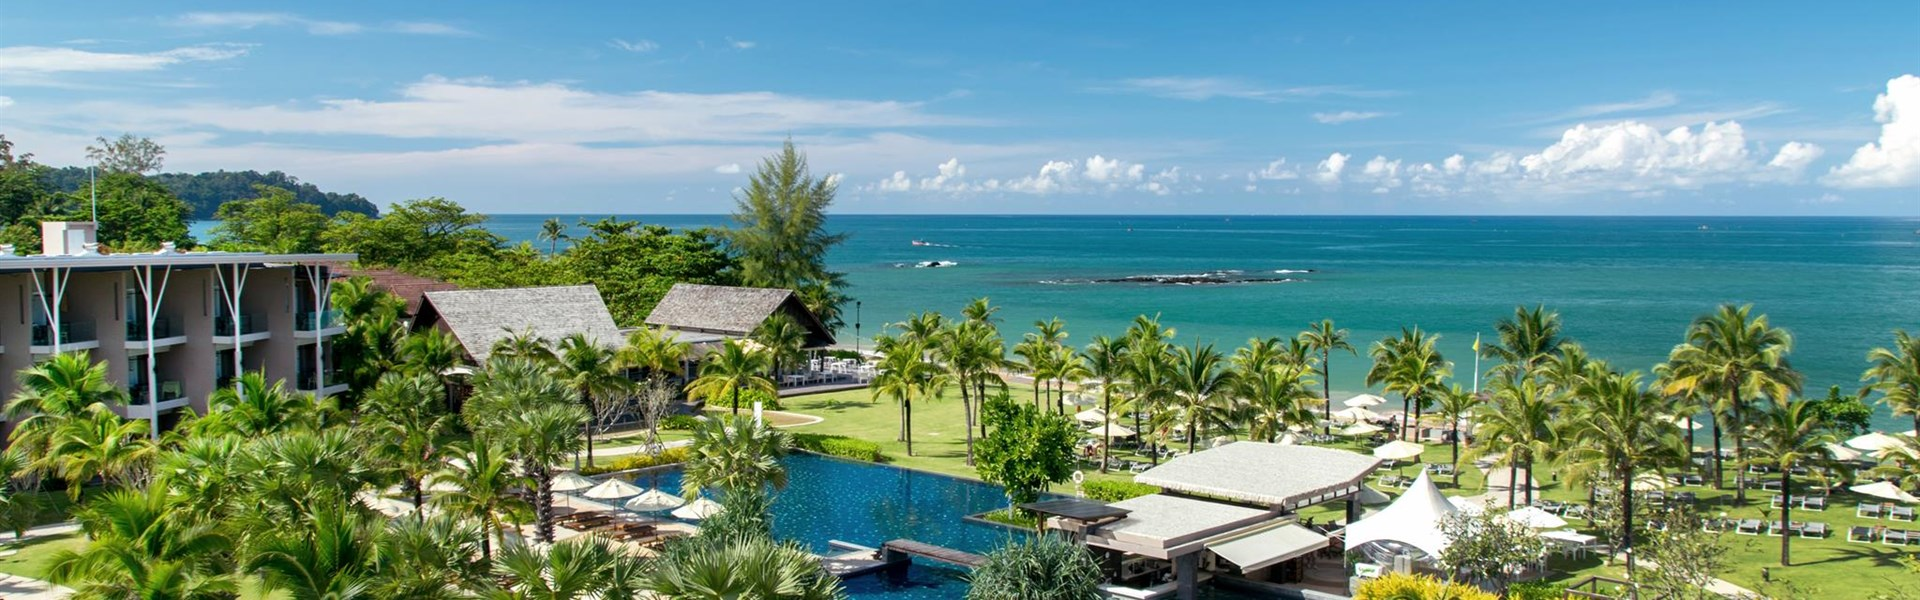 Marco Polo - The Sand hotel Khao Lak -